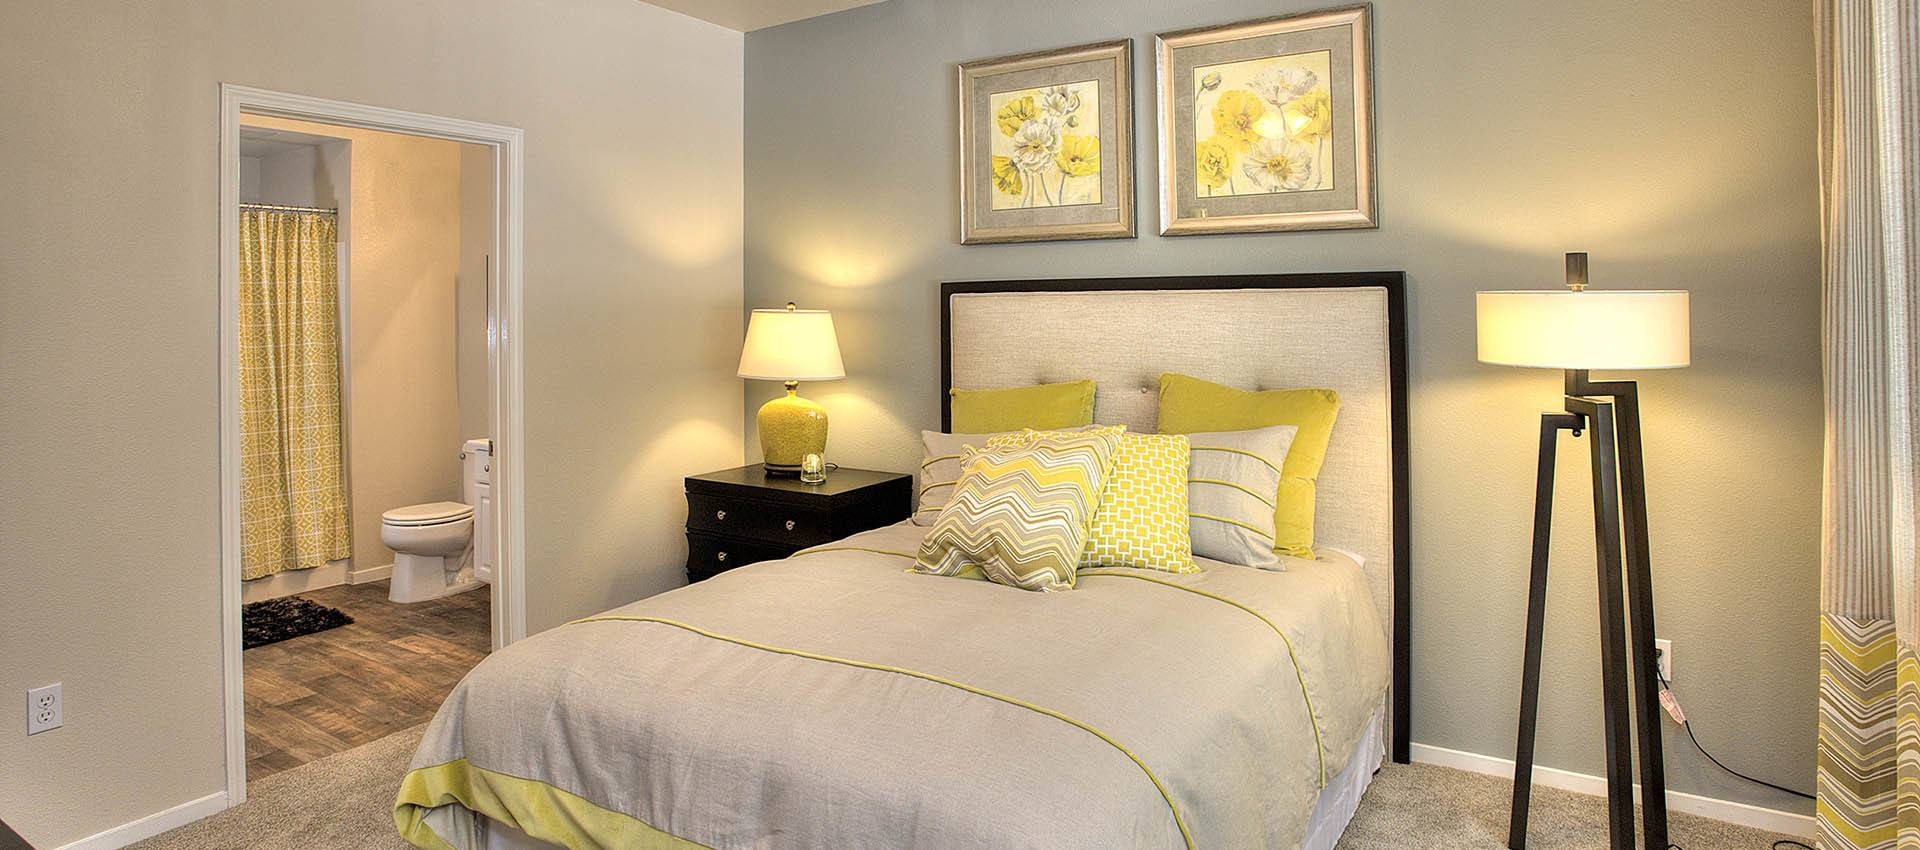 Spacious bedroom at Cross Pointe Apartment Homes in Antioch